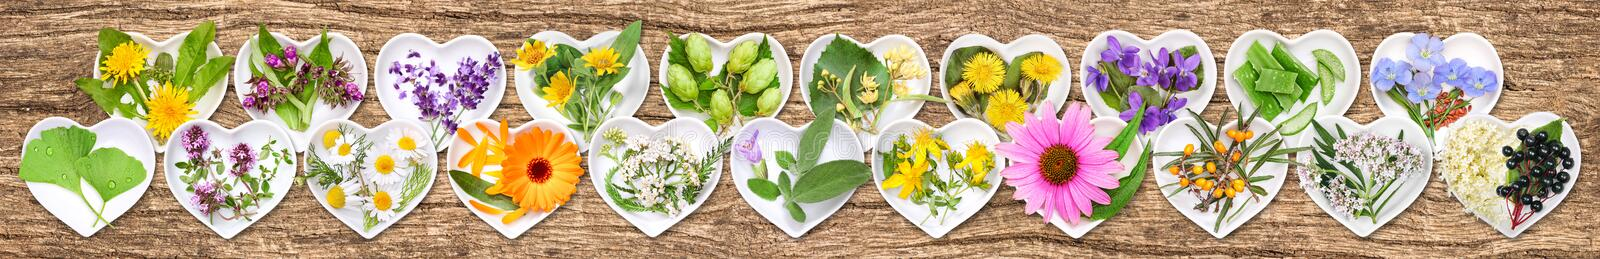 The most important medicinal plants stock photos